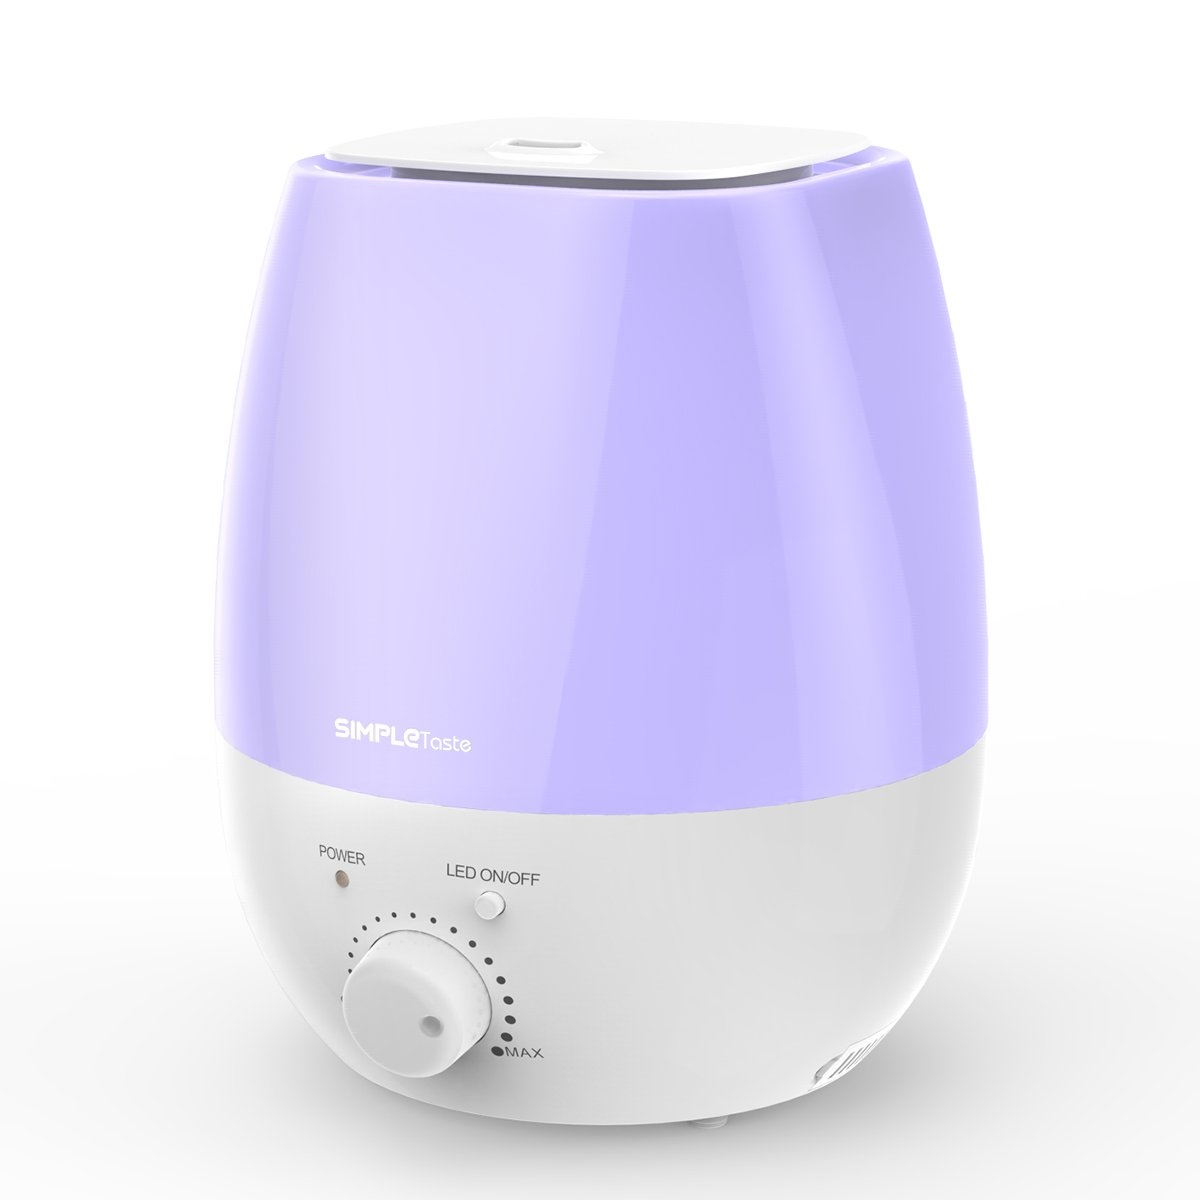 SimpleTaste Humidifier 3L(0.79 Gal) Ultrasonic Cool Mist Diffuser with 7 Colors LED Night Lights Whisper-Quiet